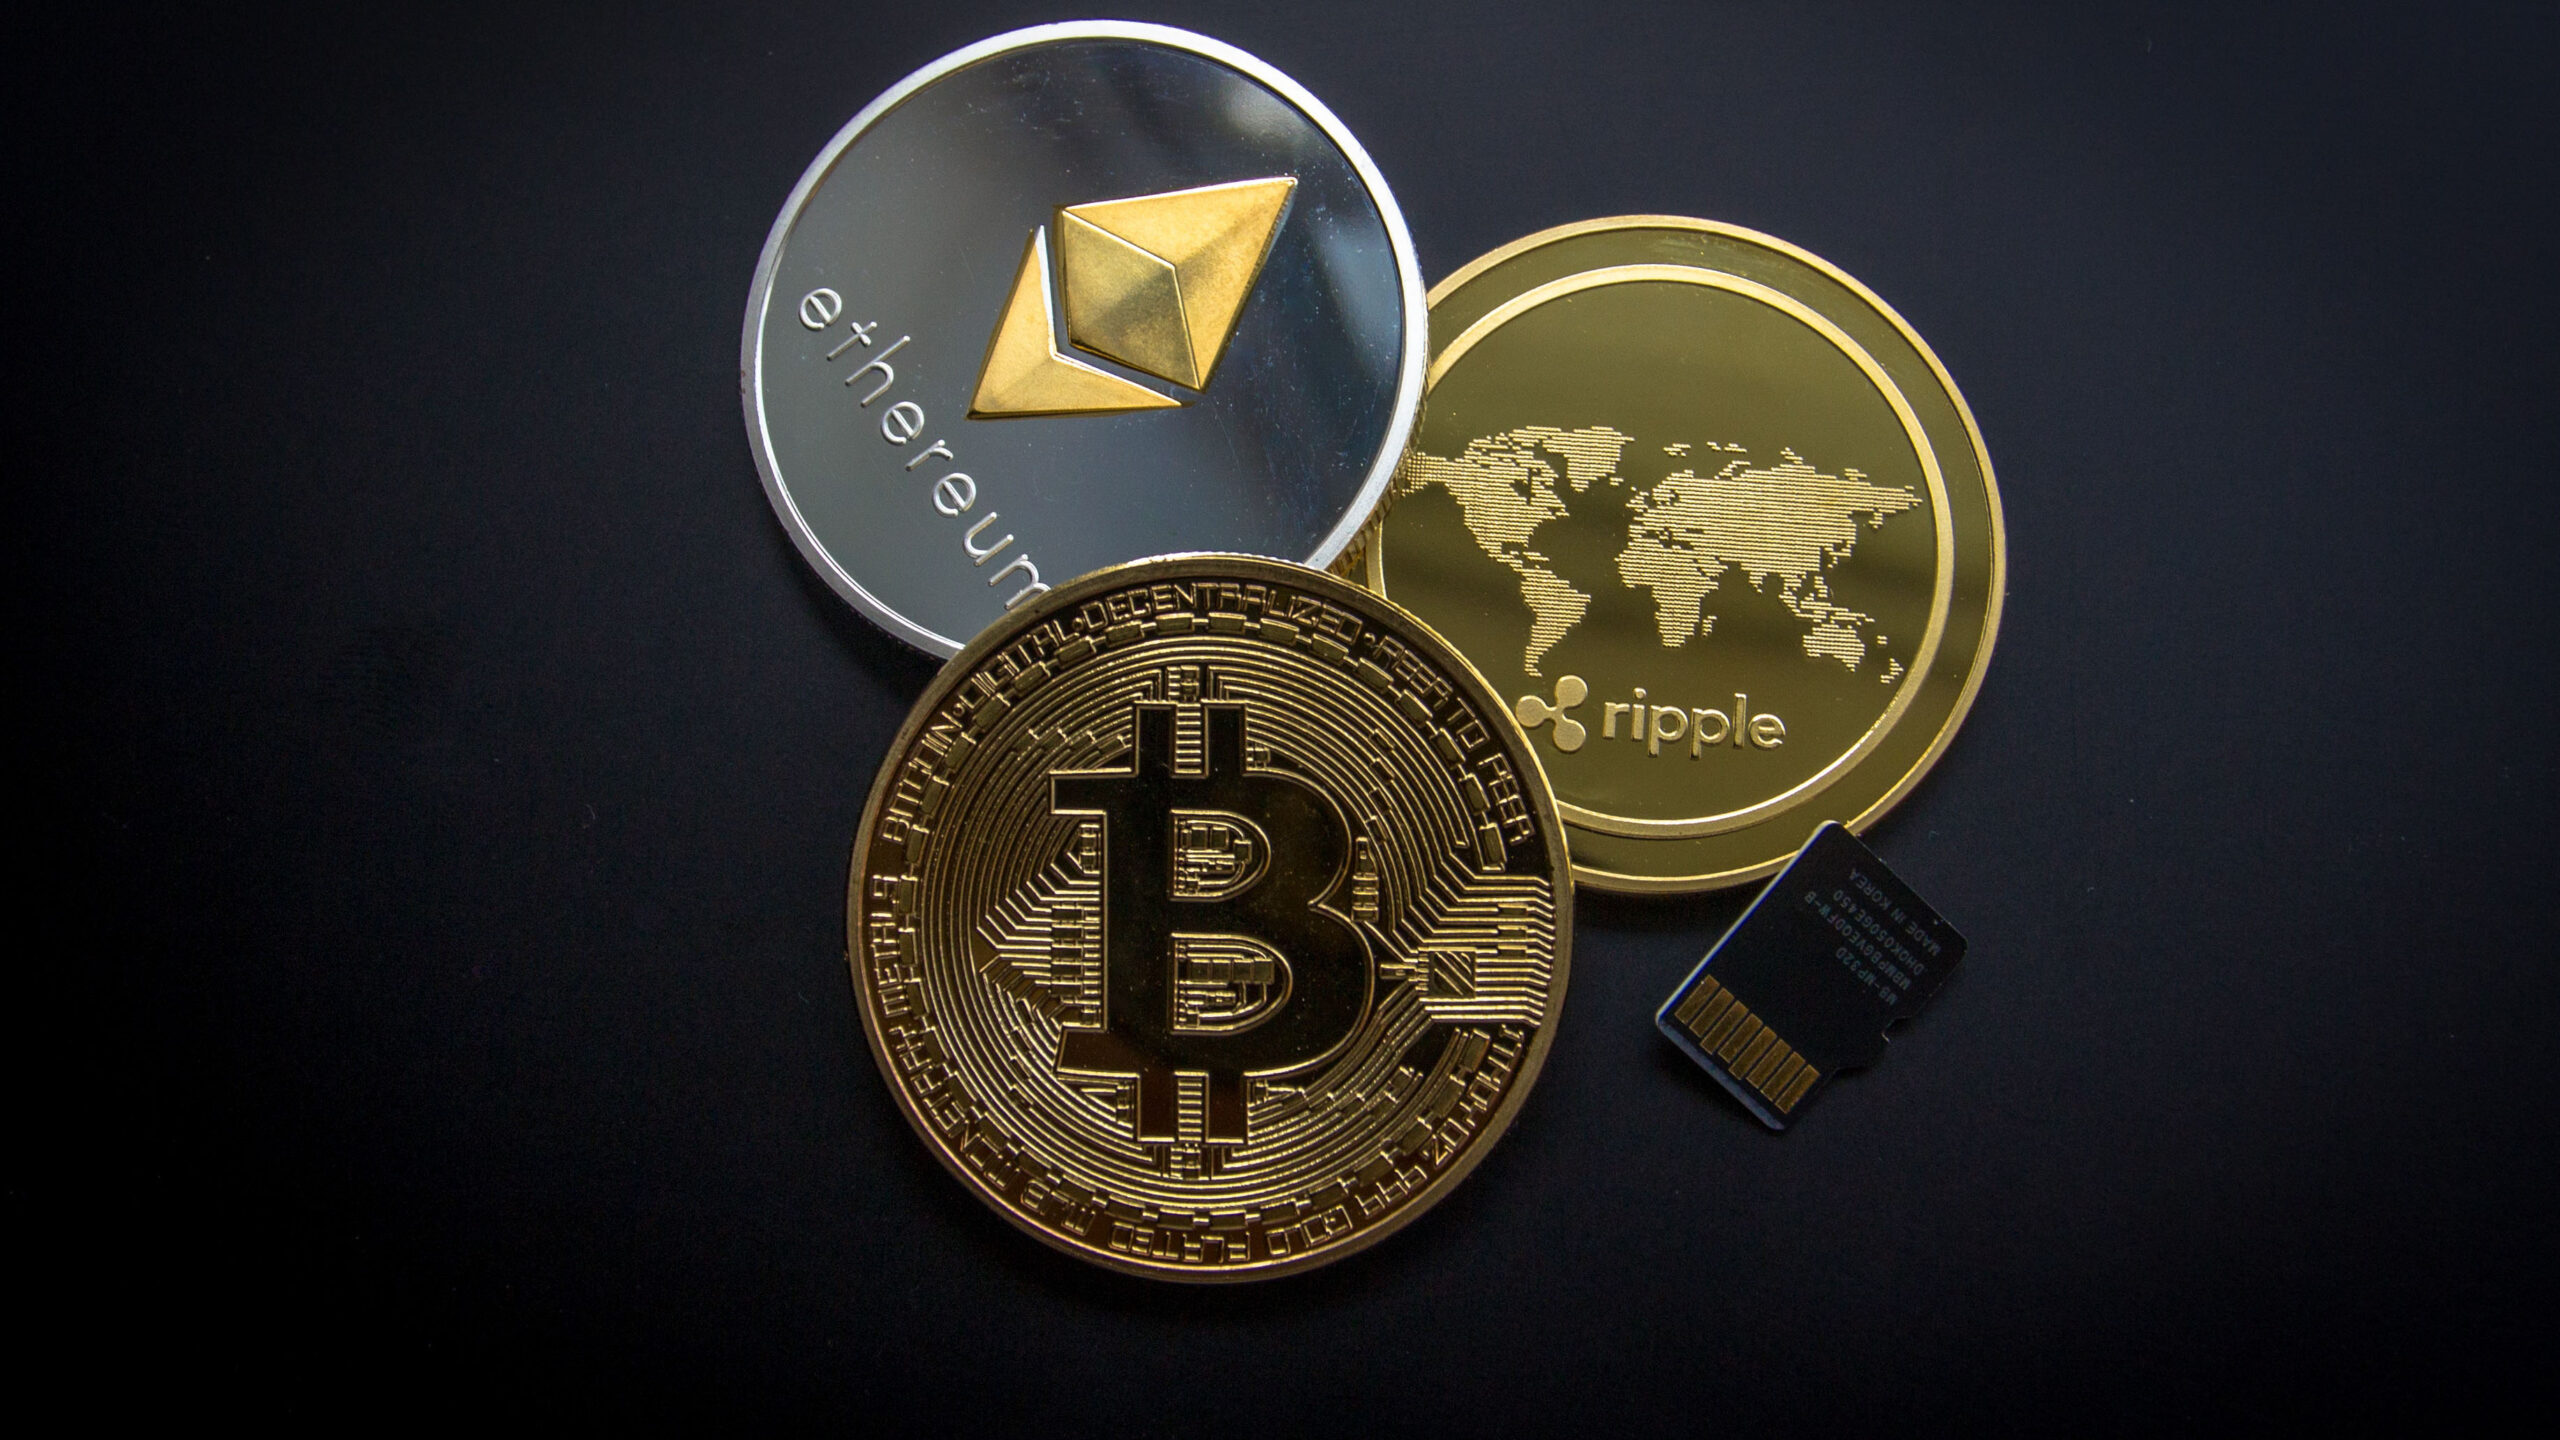 Three coins with different cryptocurrency symbols accompanies by SD card.